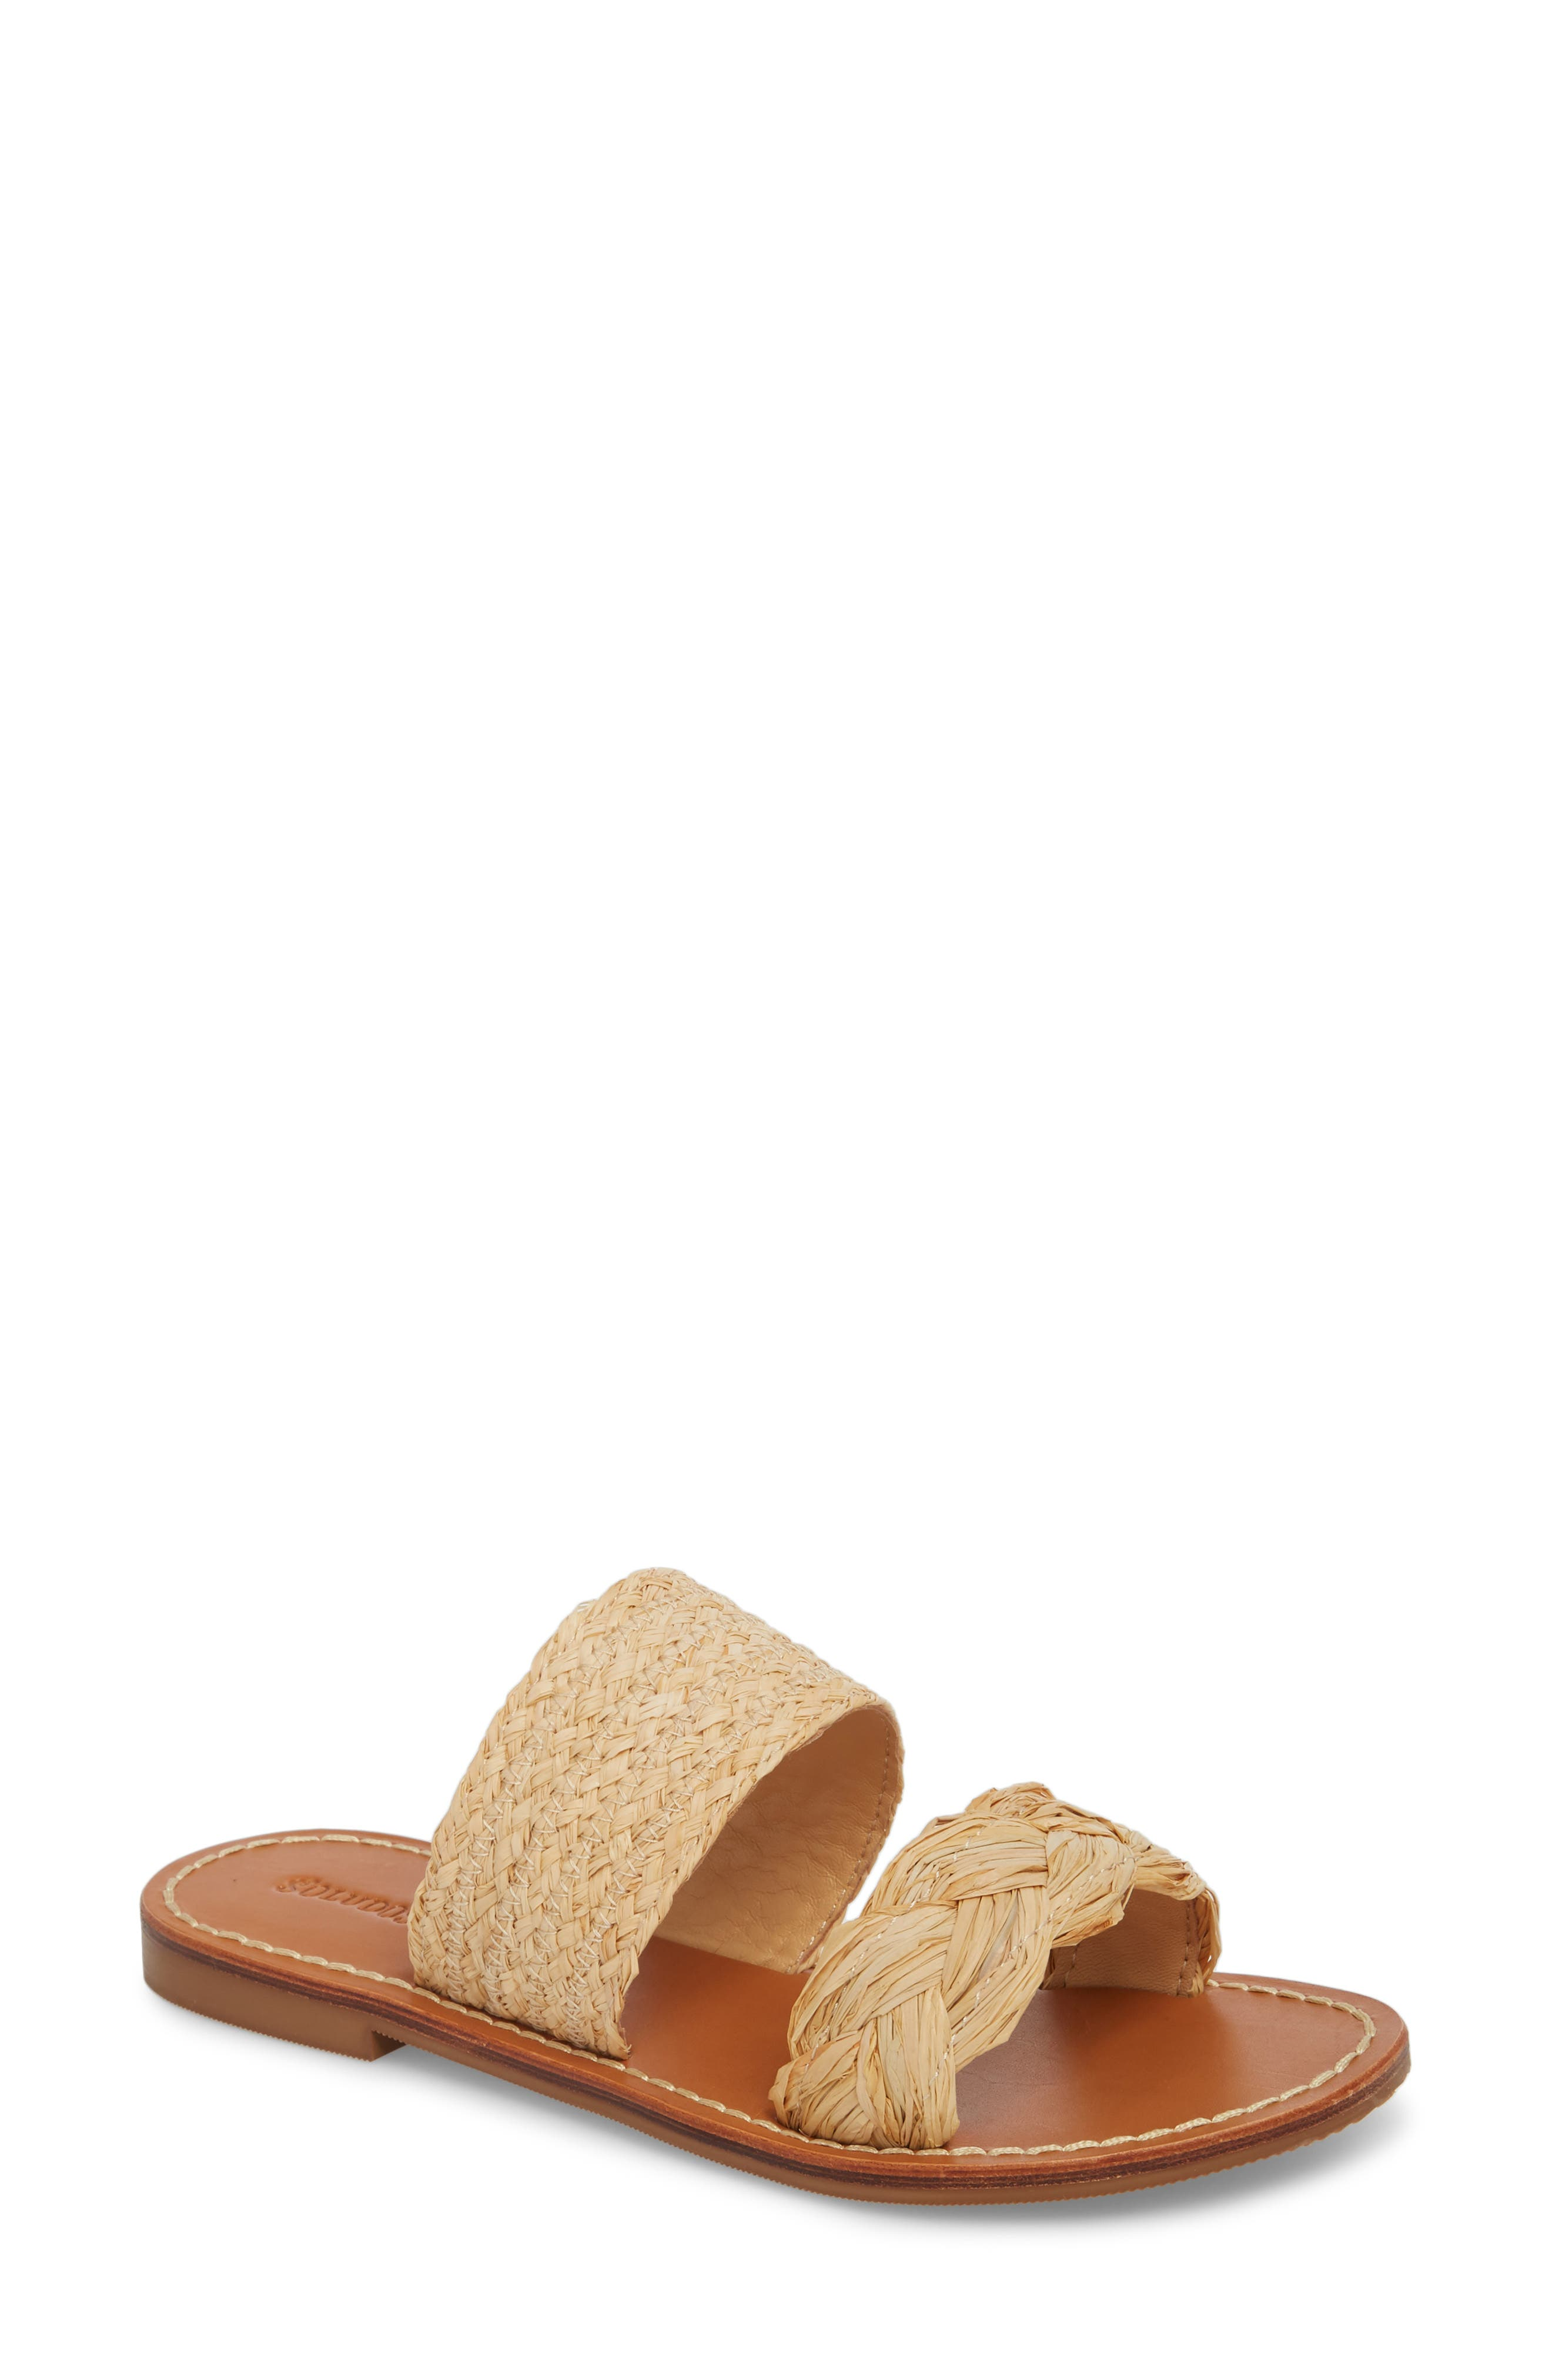 Braided Slide Sandal,                         Main,                         color, Natural Leather